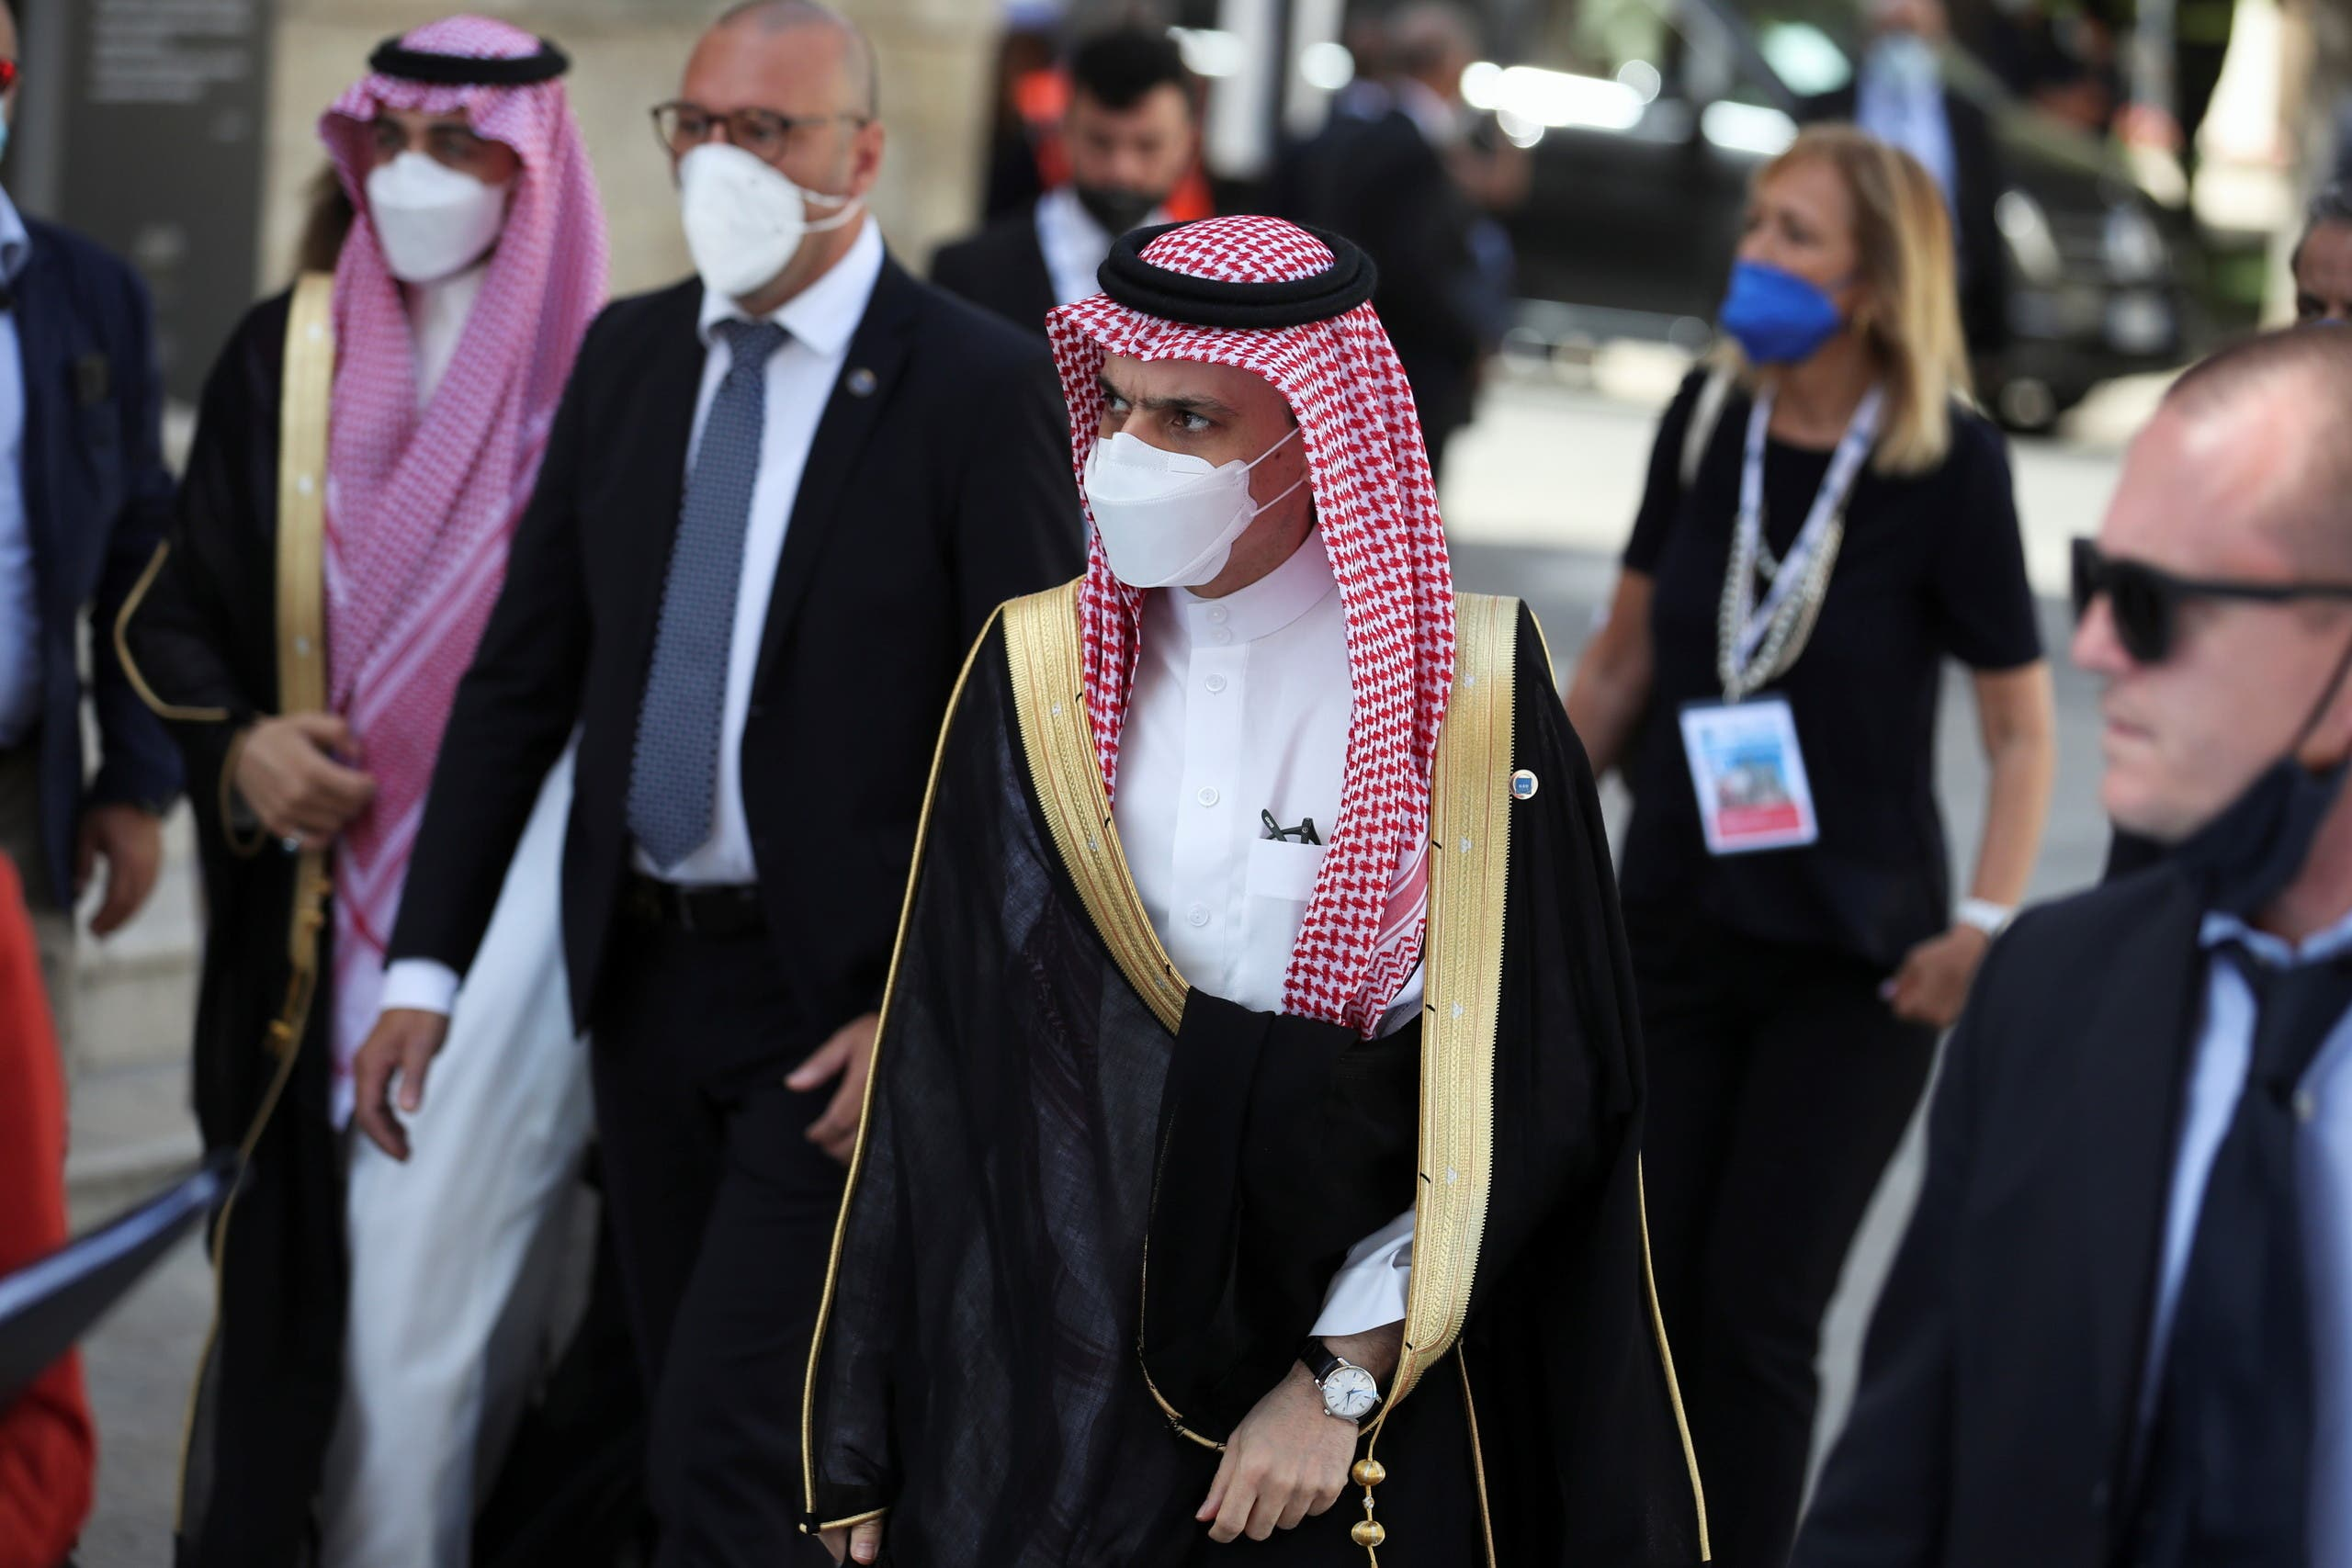 Saudi Arabia's Foreign Minister Faisal bin Farhan Al-Saud arrives to attend the G20 meeting of foreign and development ministers in Matera, Italy, June 29, 2021. (Reuters)